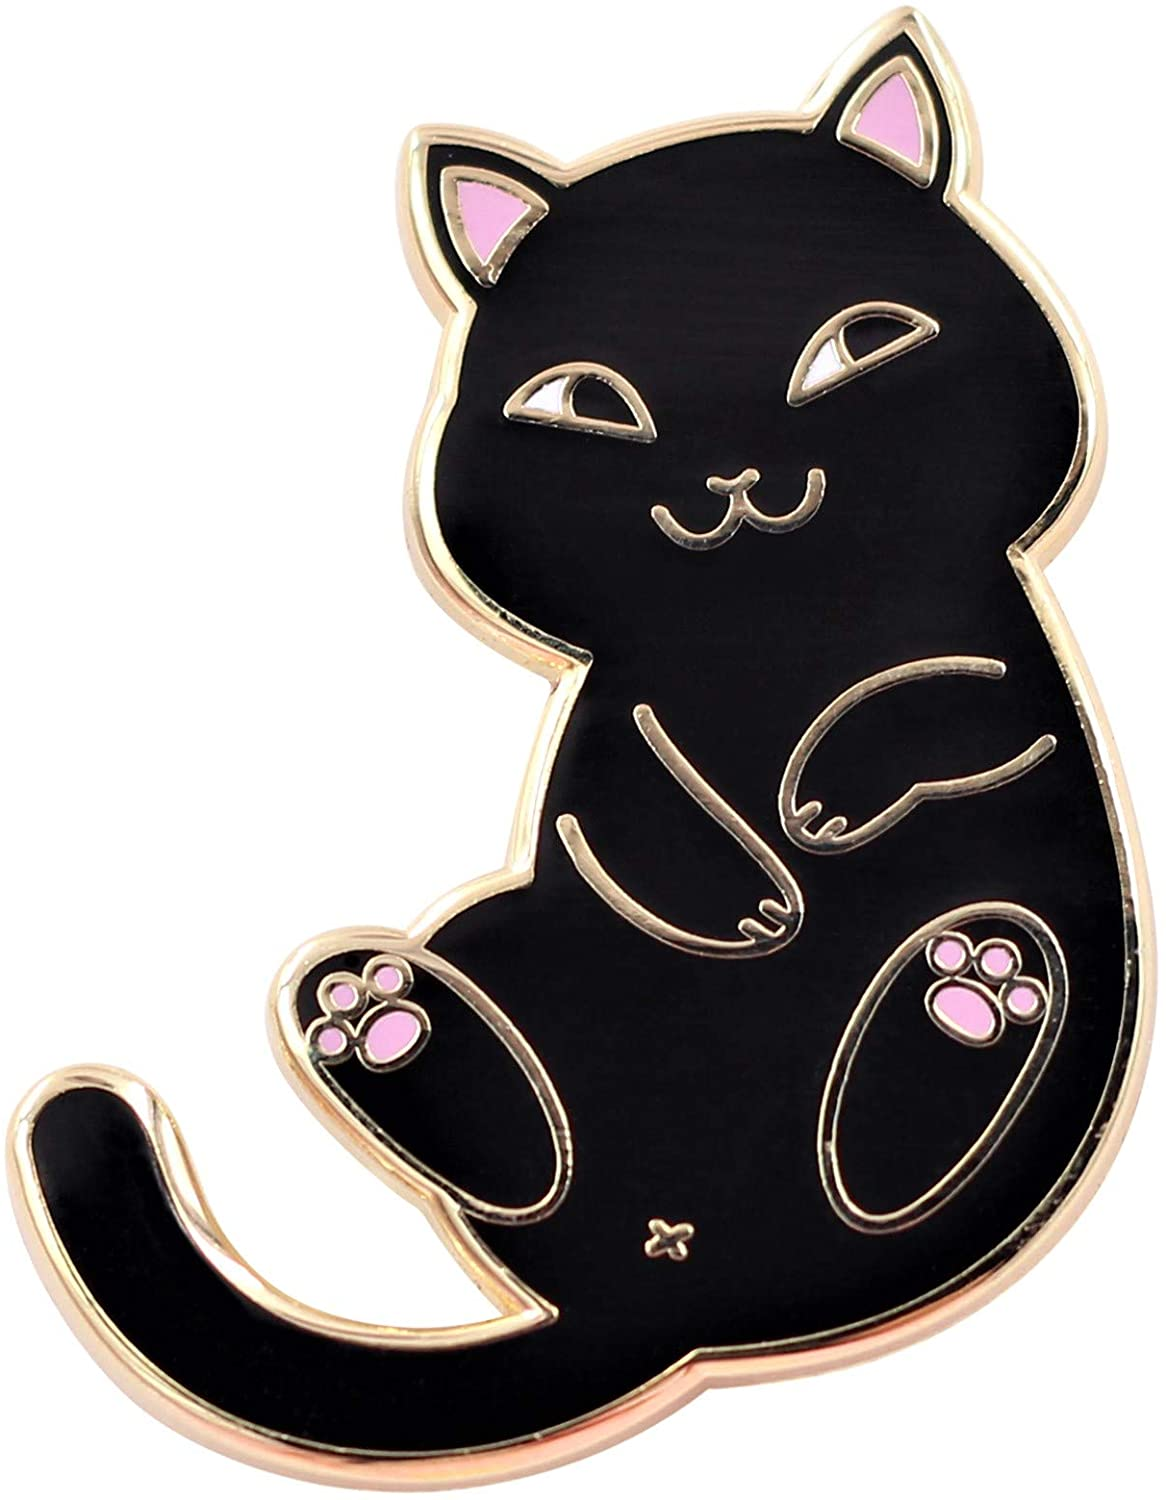 Real Sic Playful Cat Enamel Pin - Cute & Funny Cat Lapel Pin in for Jackets, Backpacks, Tops, Bags & Hats